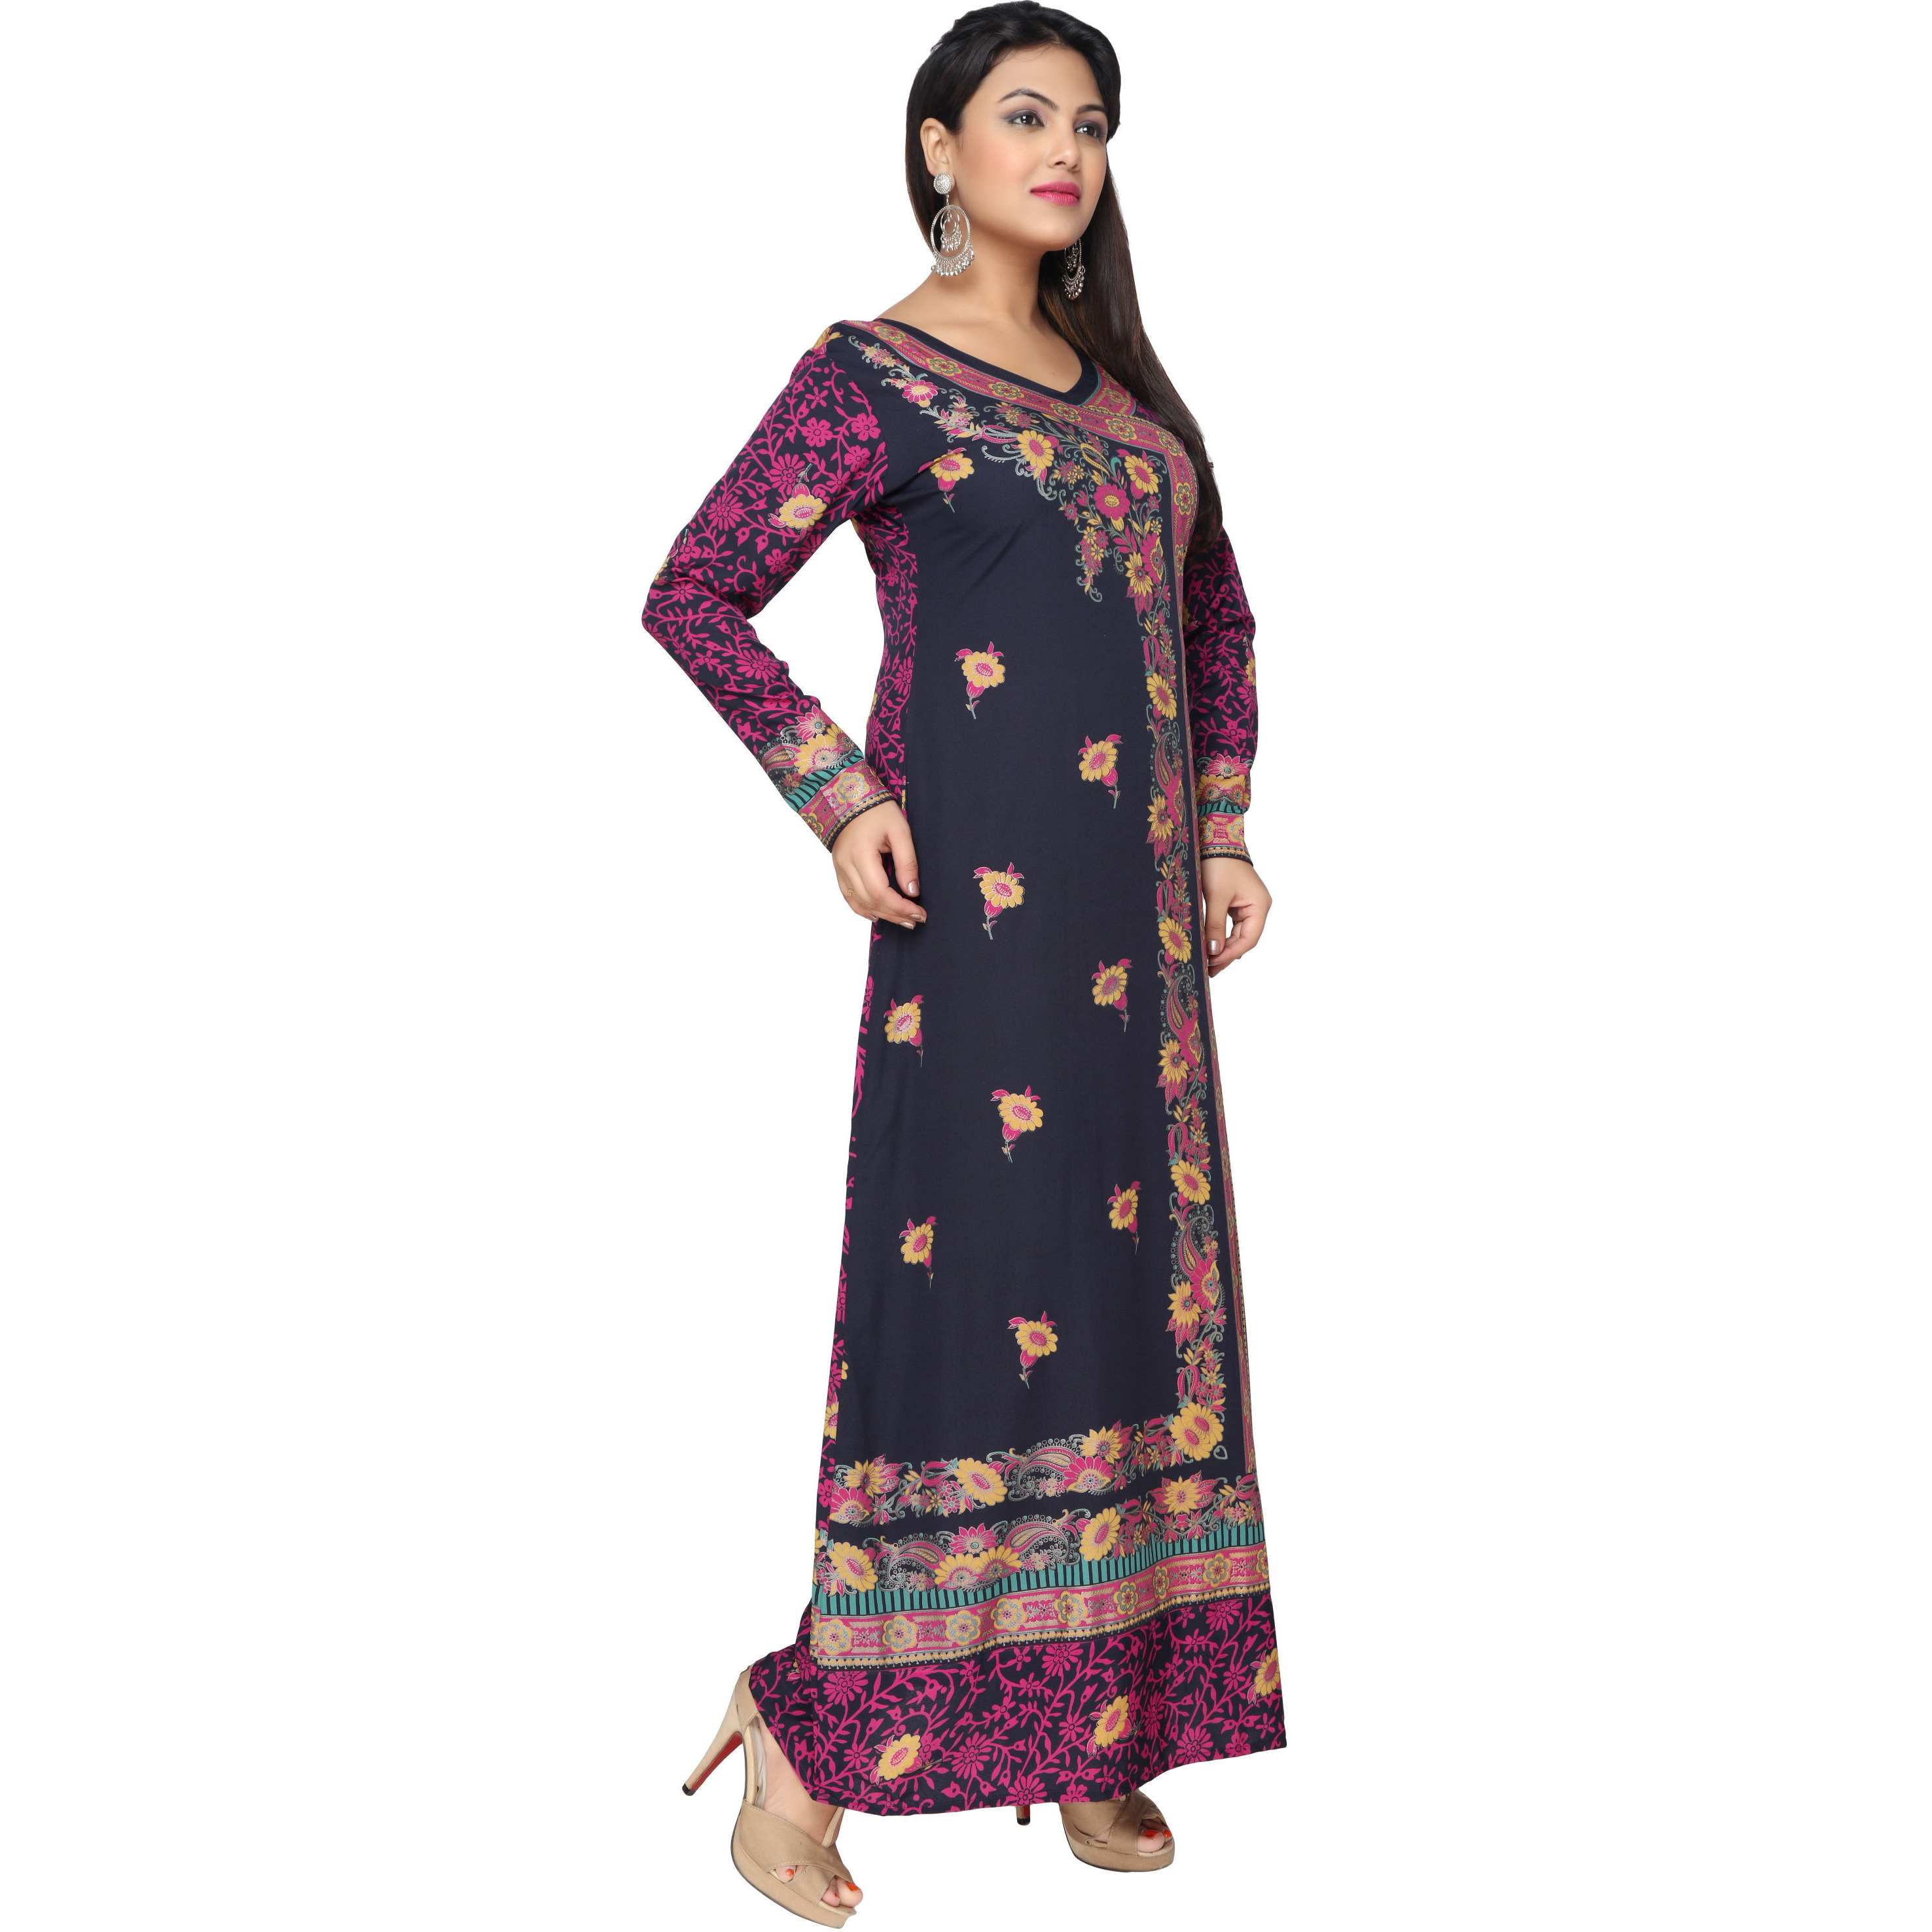 TrendyFashionMall Gold Print Kaftans Maxi Dresses with design in Front and Back (Color:TFMKFT01042-BLUEMULTI, Size:48 - 3X-LARGE)